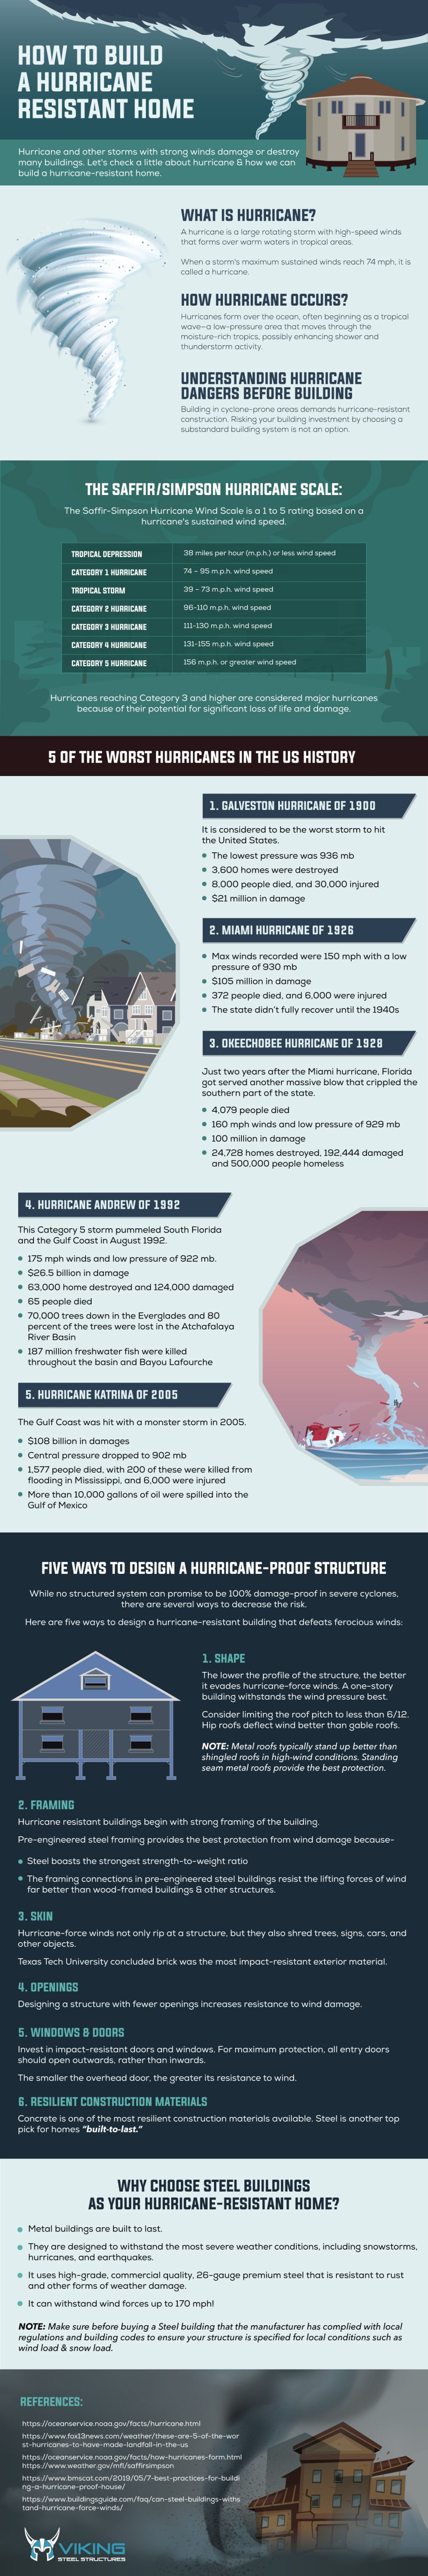 Is Your Home Safe From Hurricanes? - Infographic